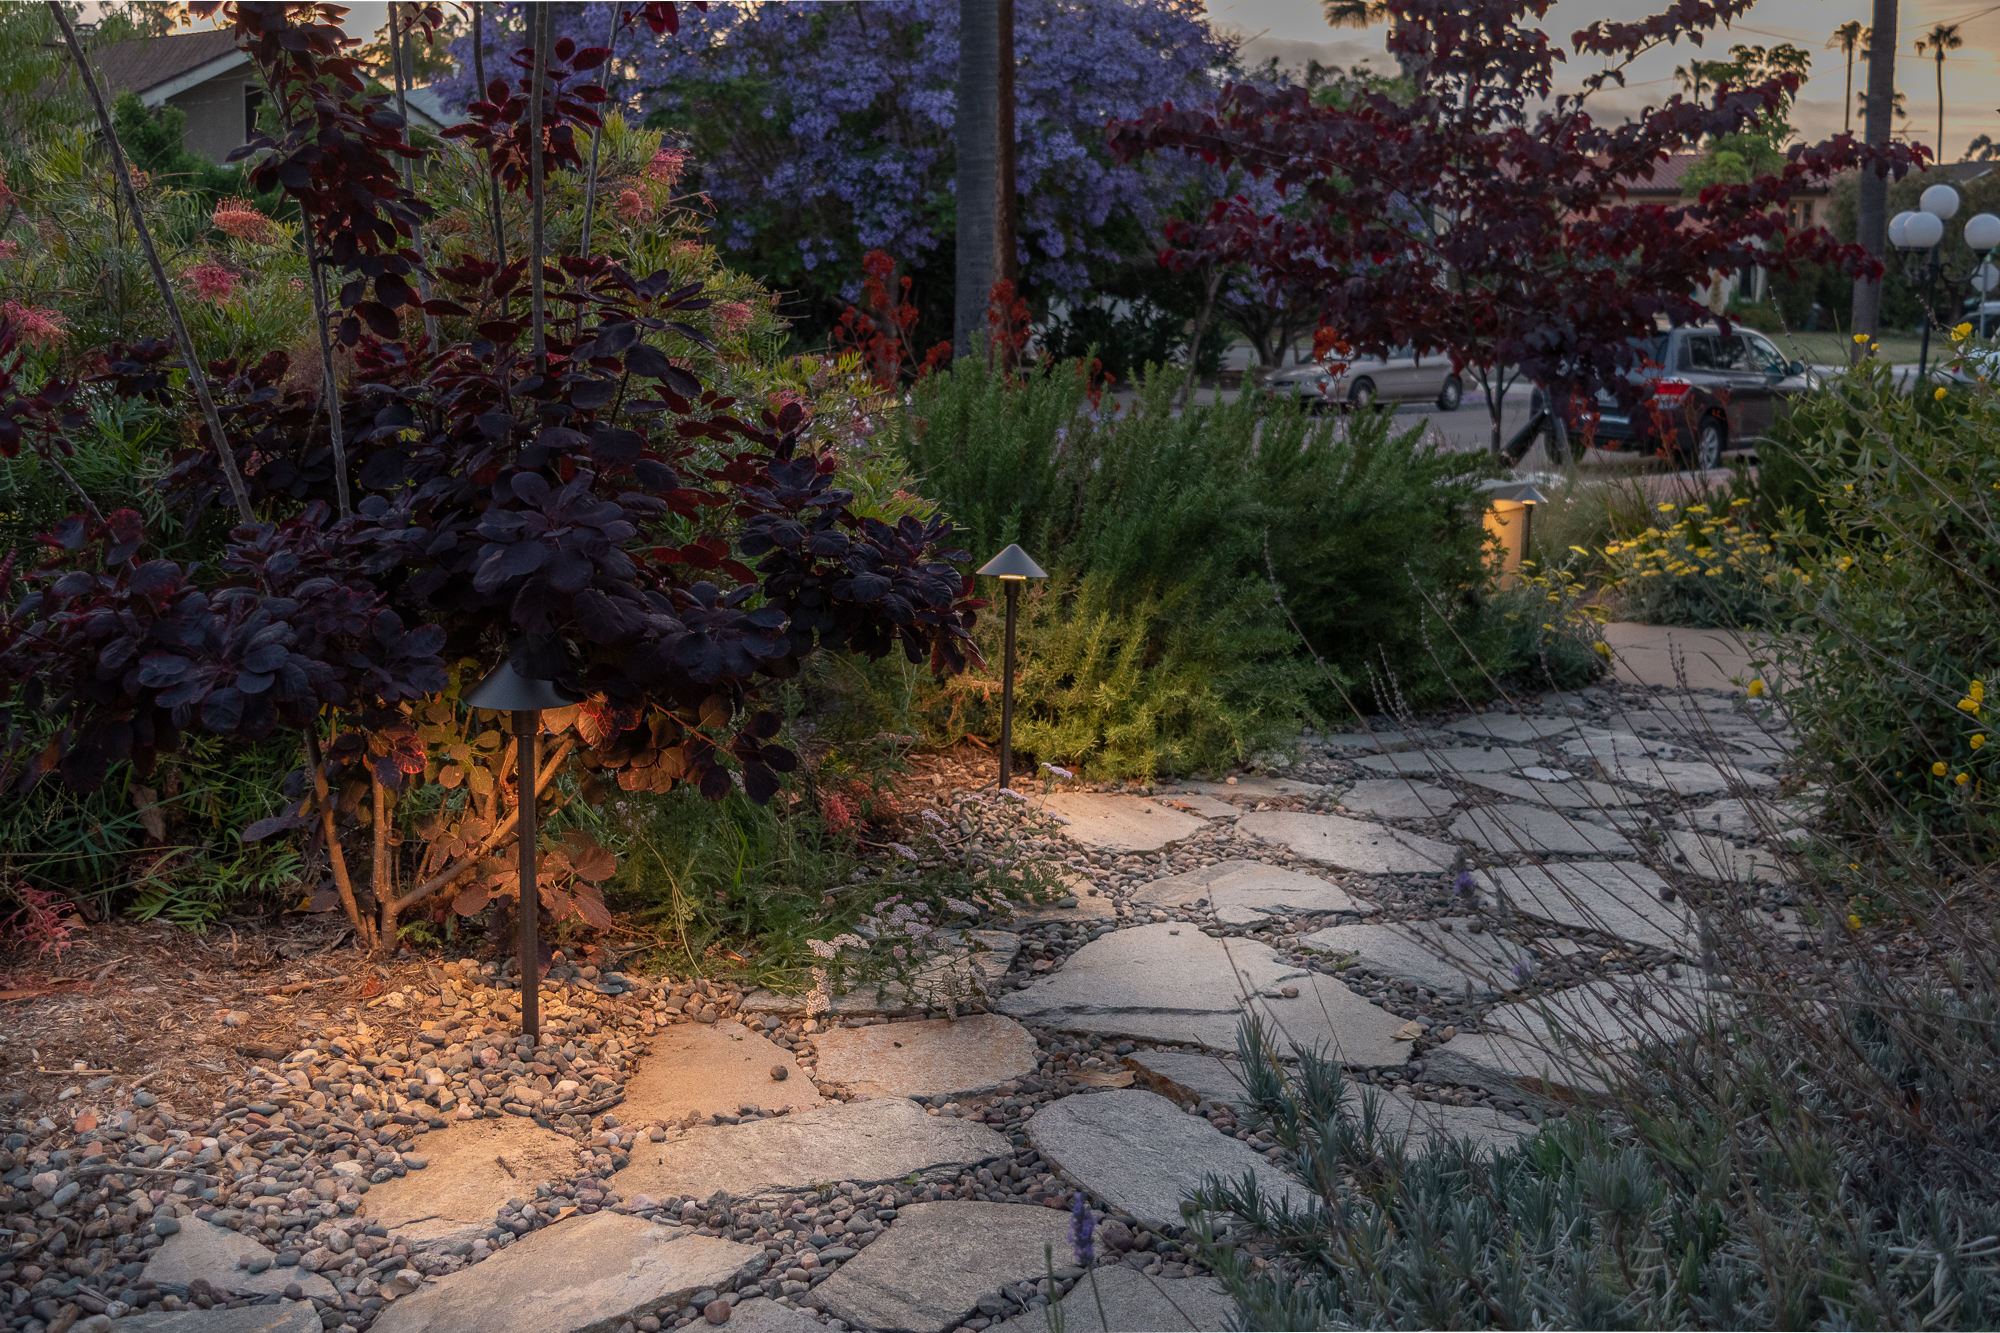 The Gold Hive Landscape Lighting Kichler How To California Garden Front Yard-0214.jpg